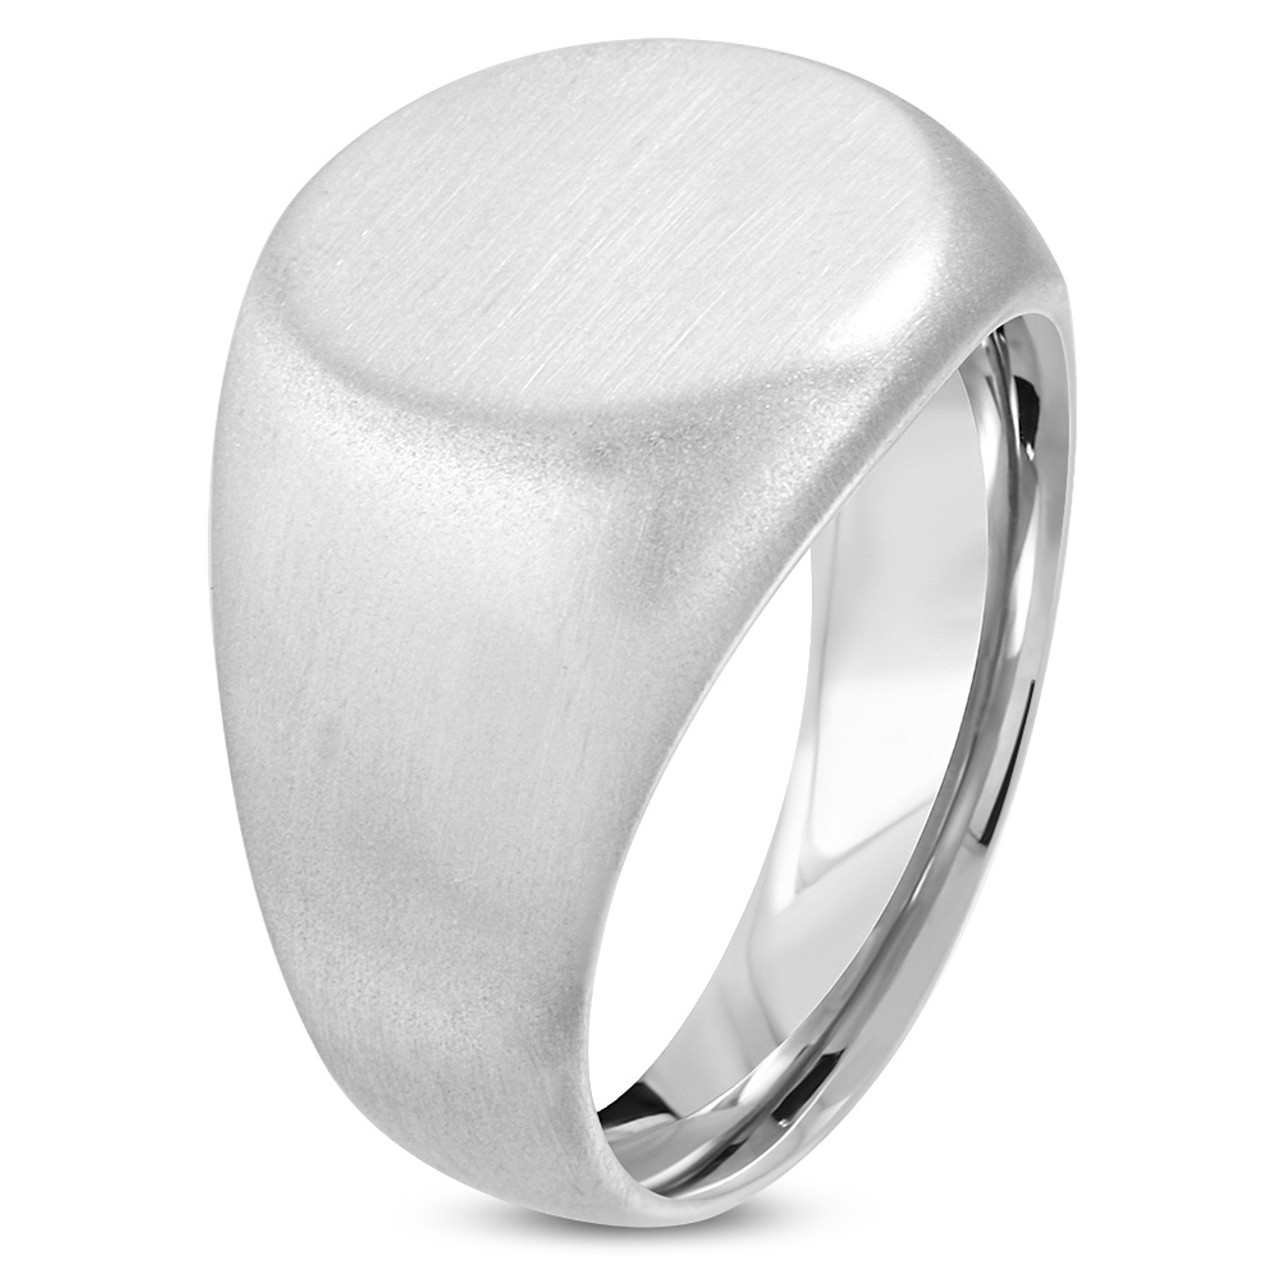 Stainless Steel Signet Ring Band Polished 15 mm Circular Signet Ring